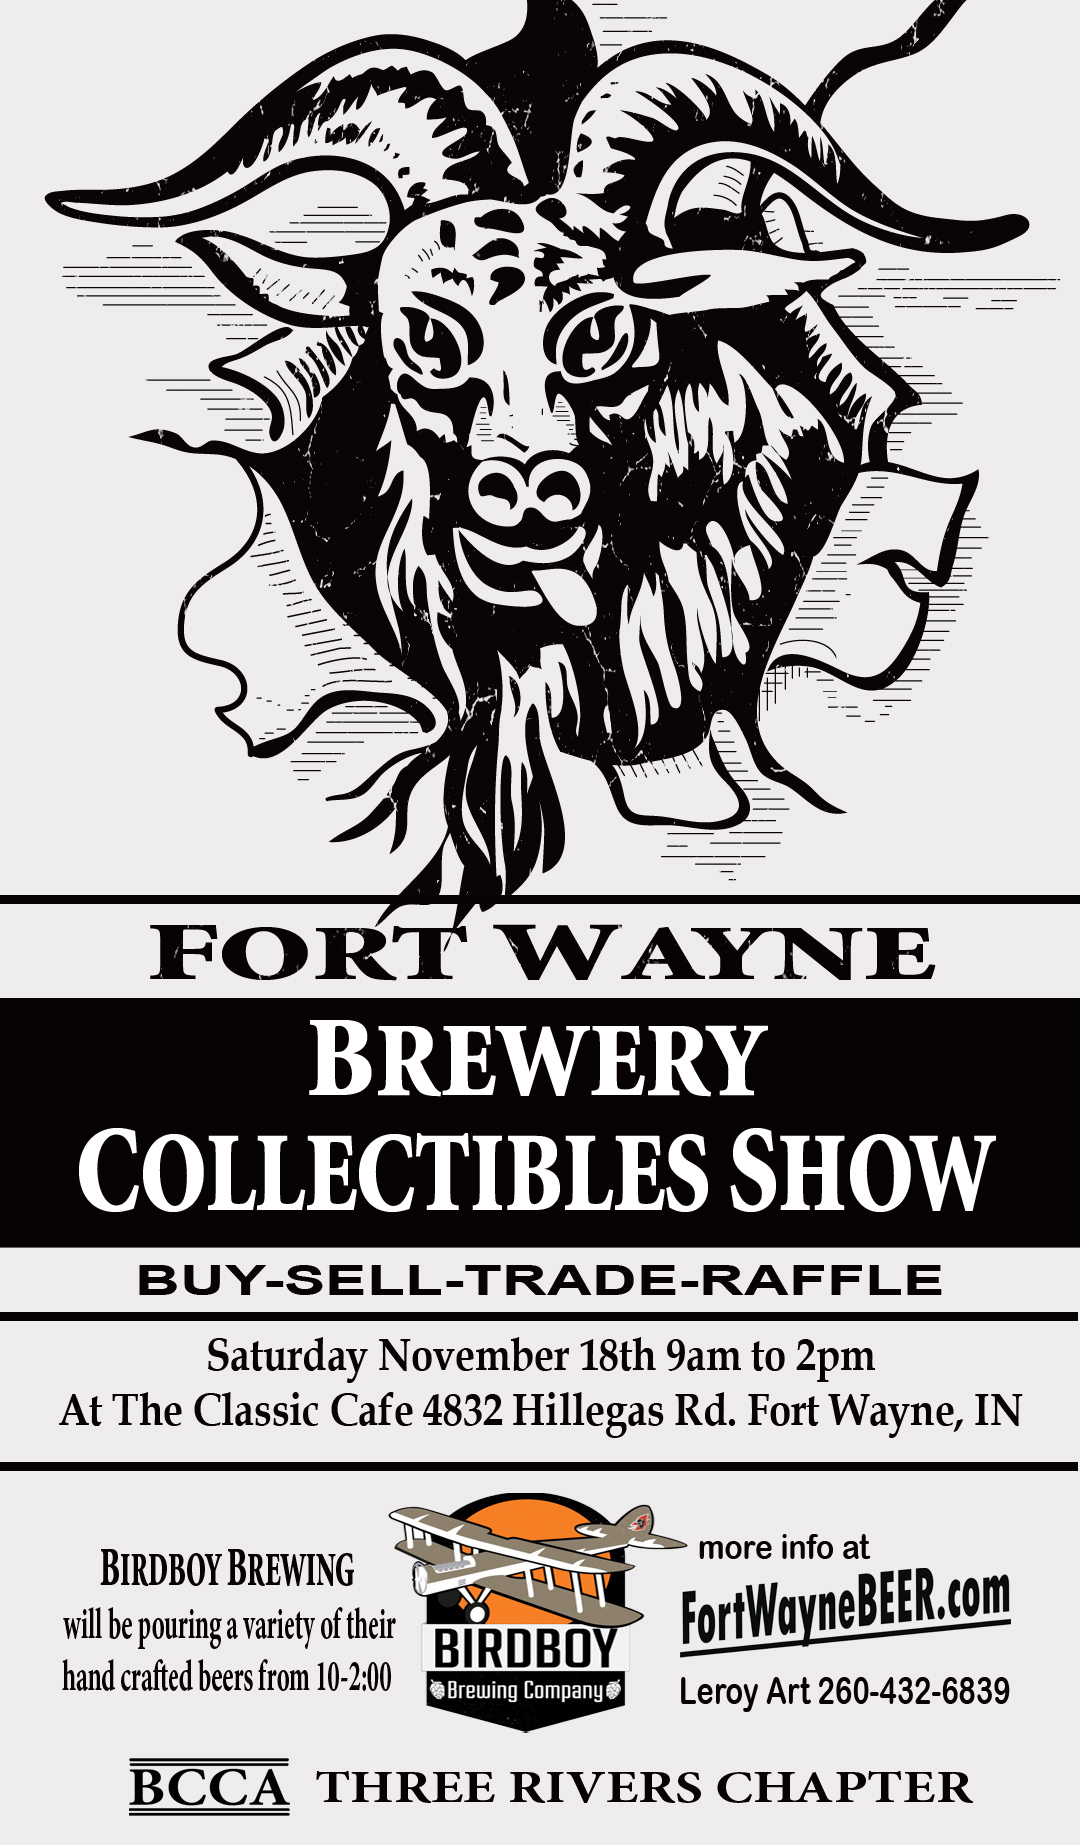 2017 Fort Wayne Brewery Collectibles Show ad2.jpg